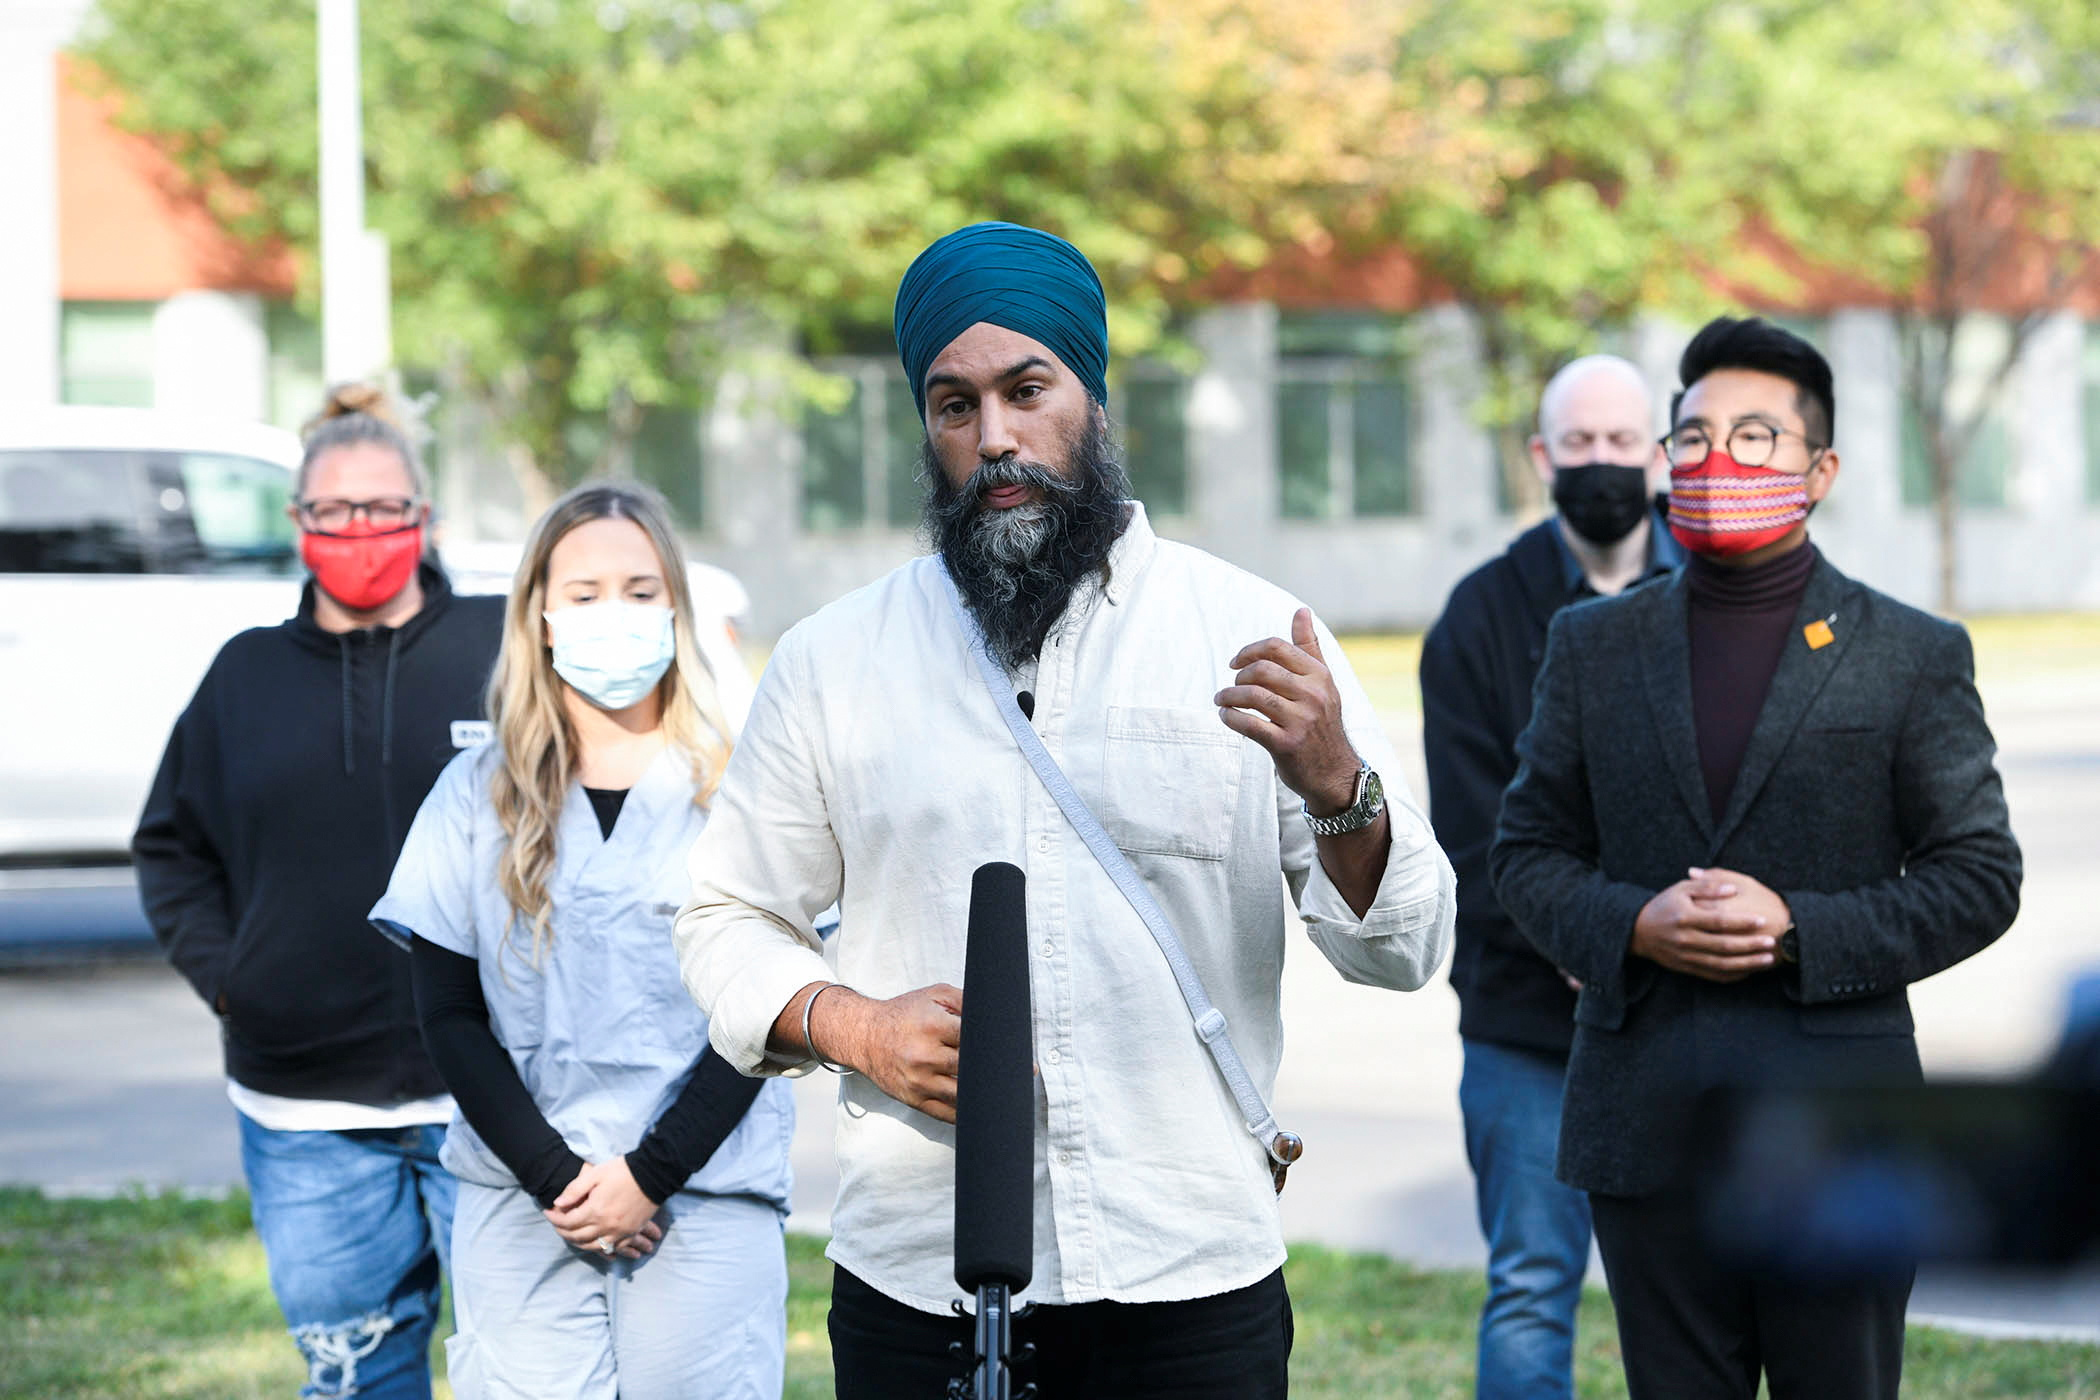 Canada's New Democratic Party (NDP) leader Jagmeet Singh meets with healthcare workers near the East Edmonton Health Centre, in Edmonton, Alberta, Canada September 18, 2021. REUTERS/Candace Elliott